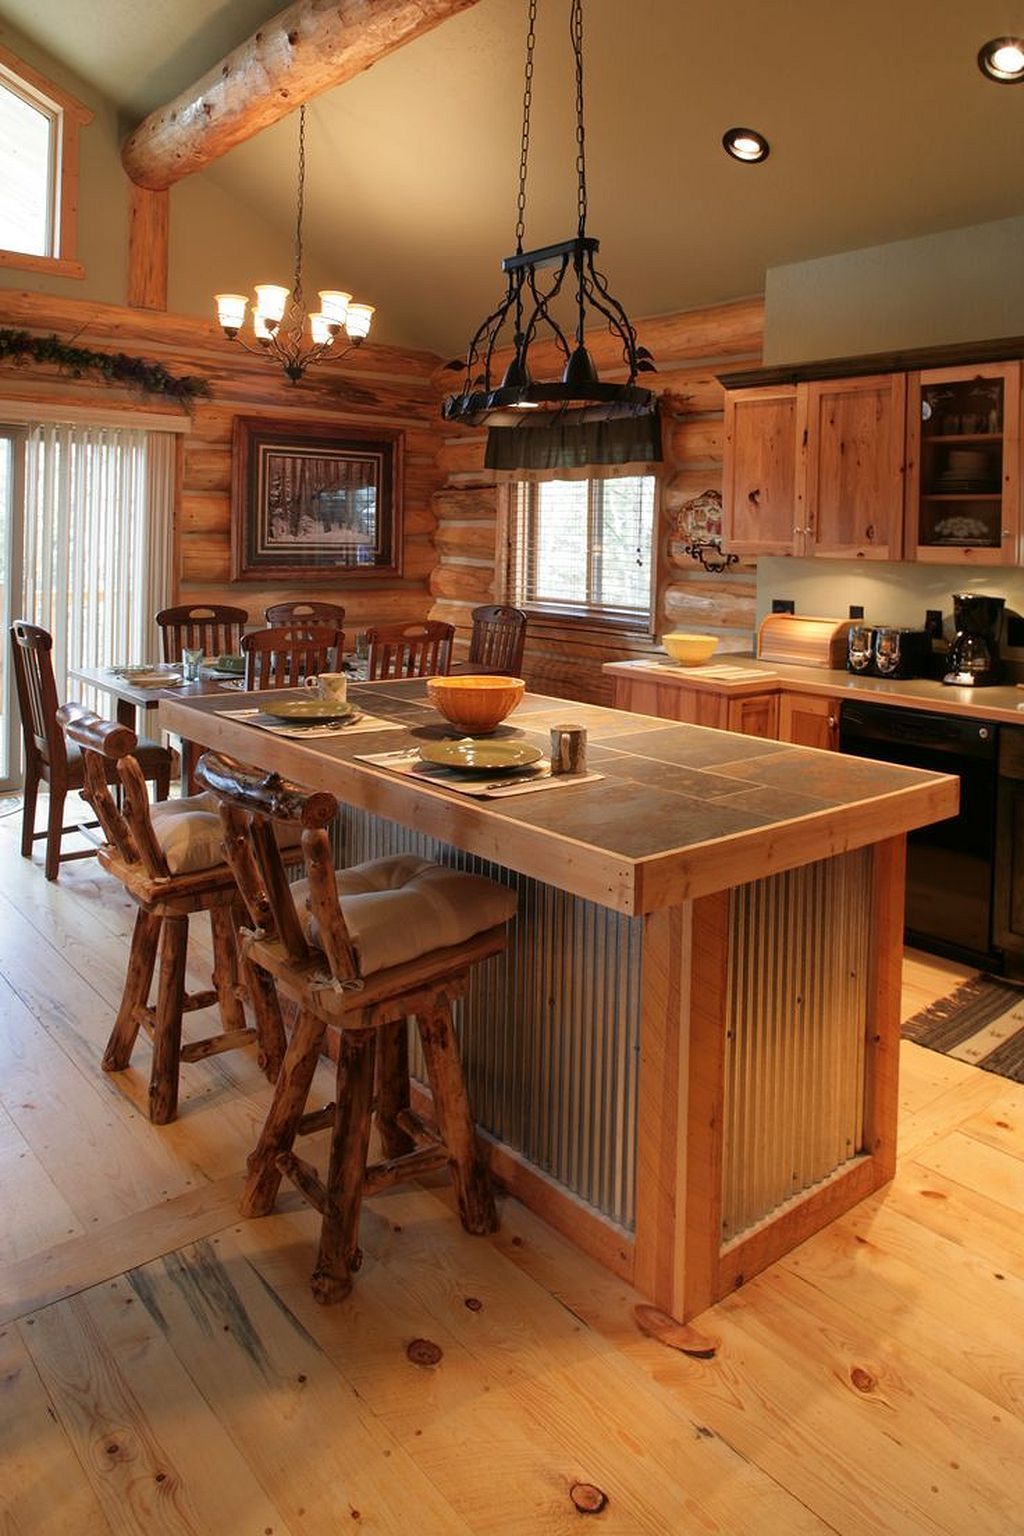 simple rustic homemade kitchen islands ideas 9 homemade kitchen island small rustic kitchens on kitchen ideas with island id=64130